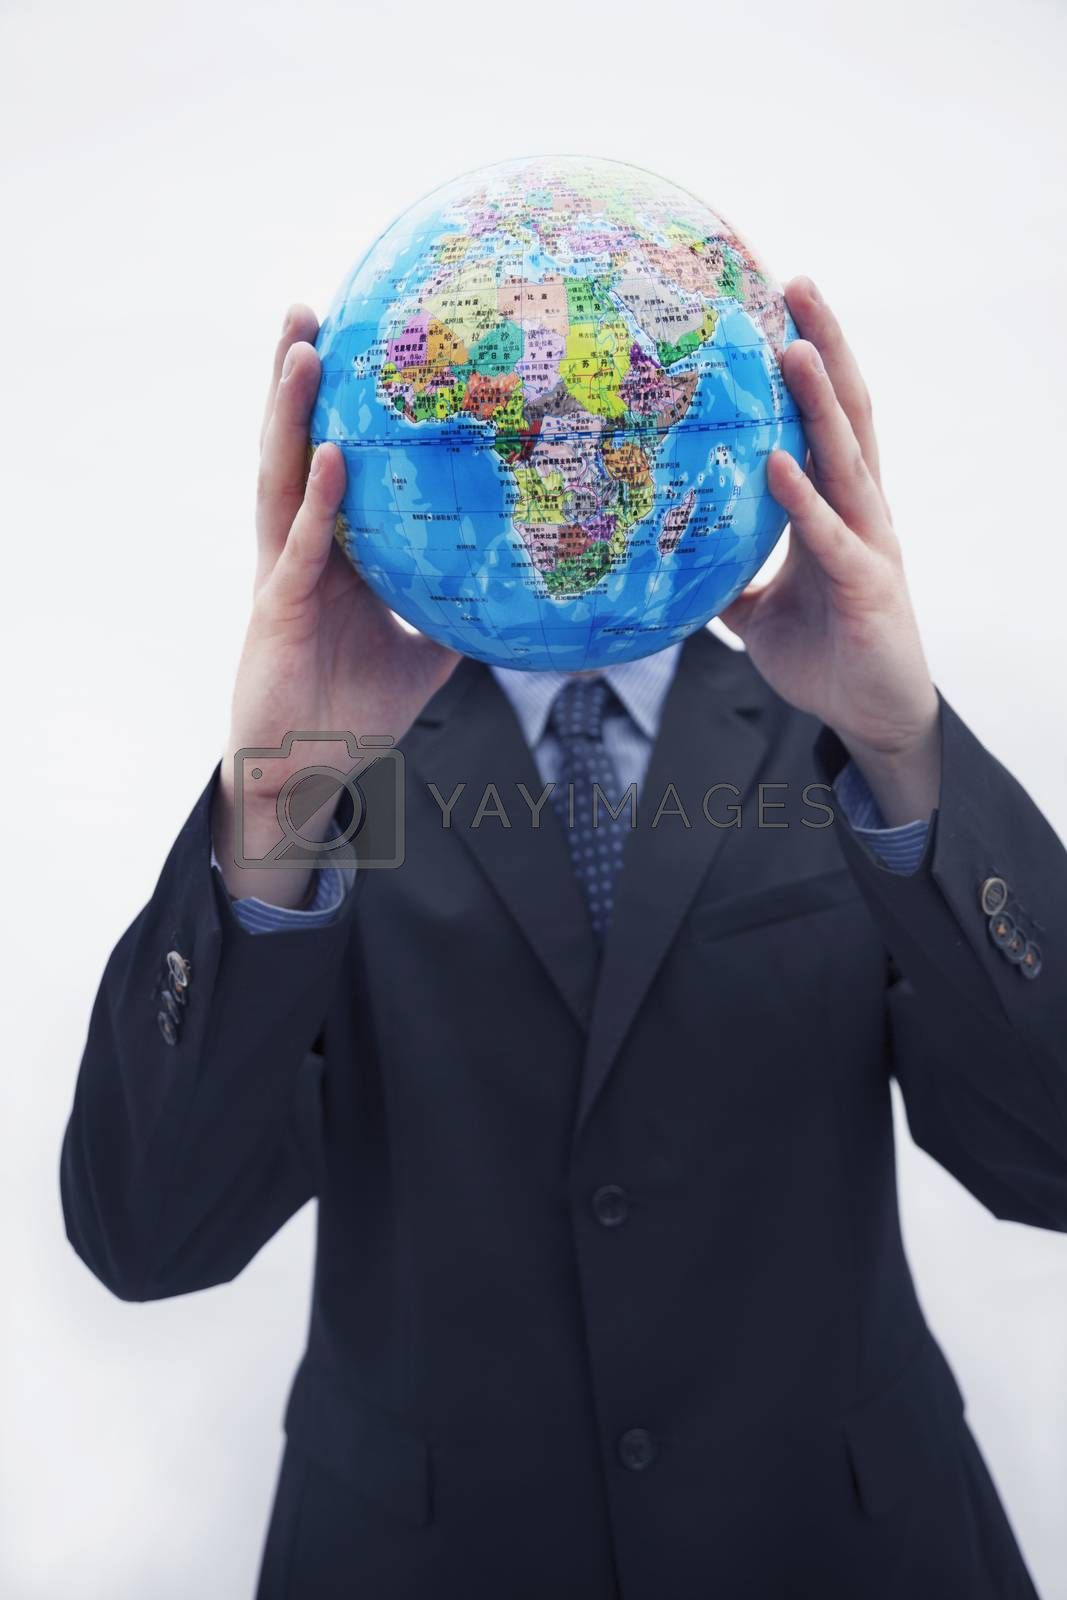 Businessman in a suit holding up a globe in front of his face, obscured face, studio shot by XiXinXing